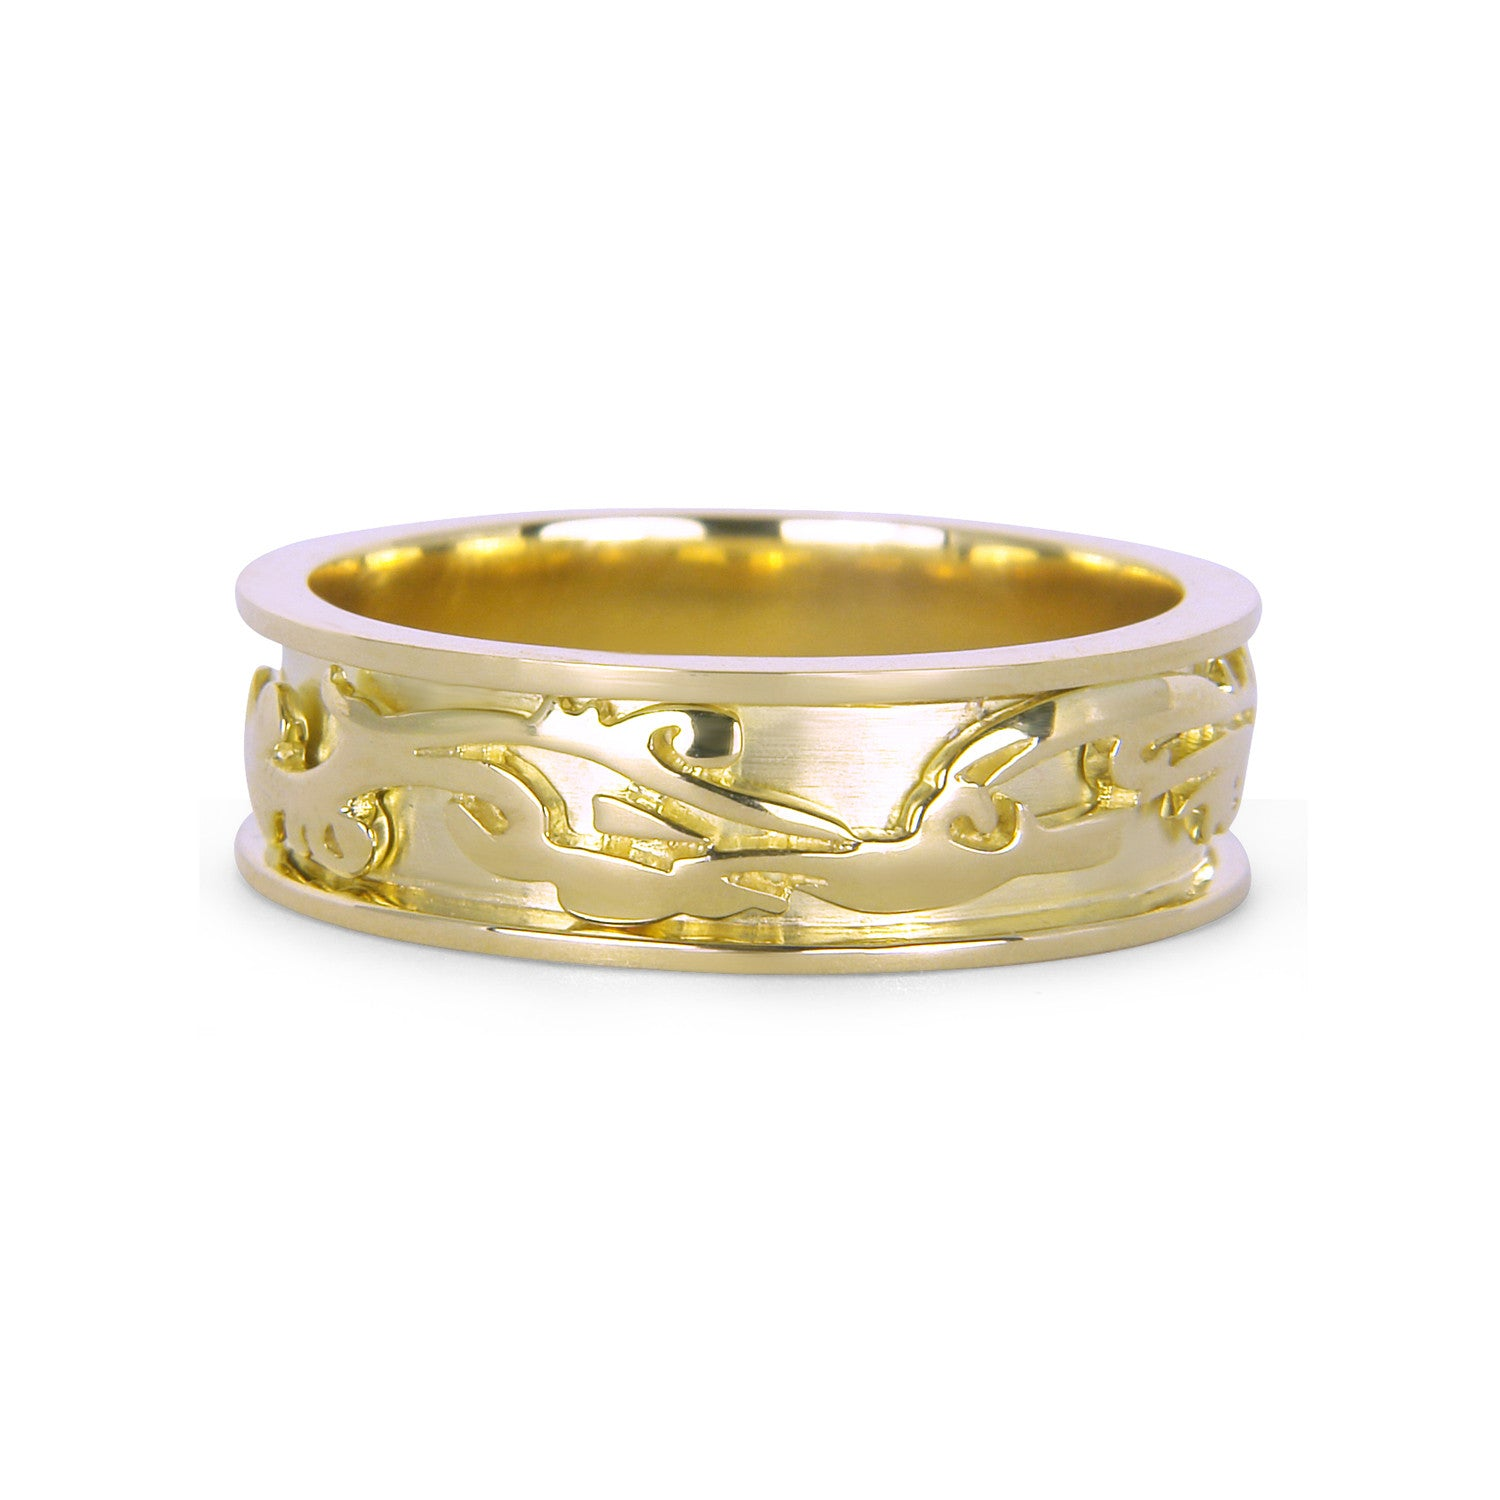 Bespoke Richard wedding ring - 18ct yellow old and unique dragon pattern